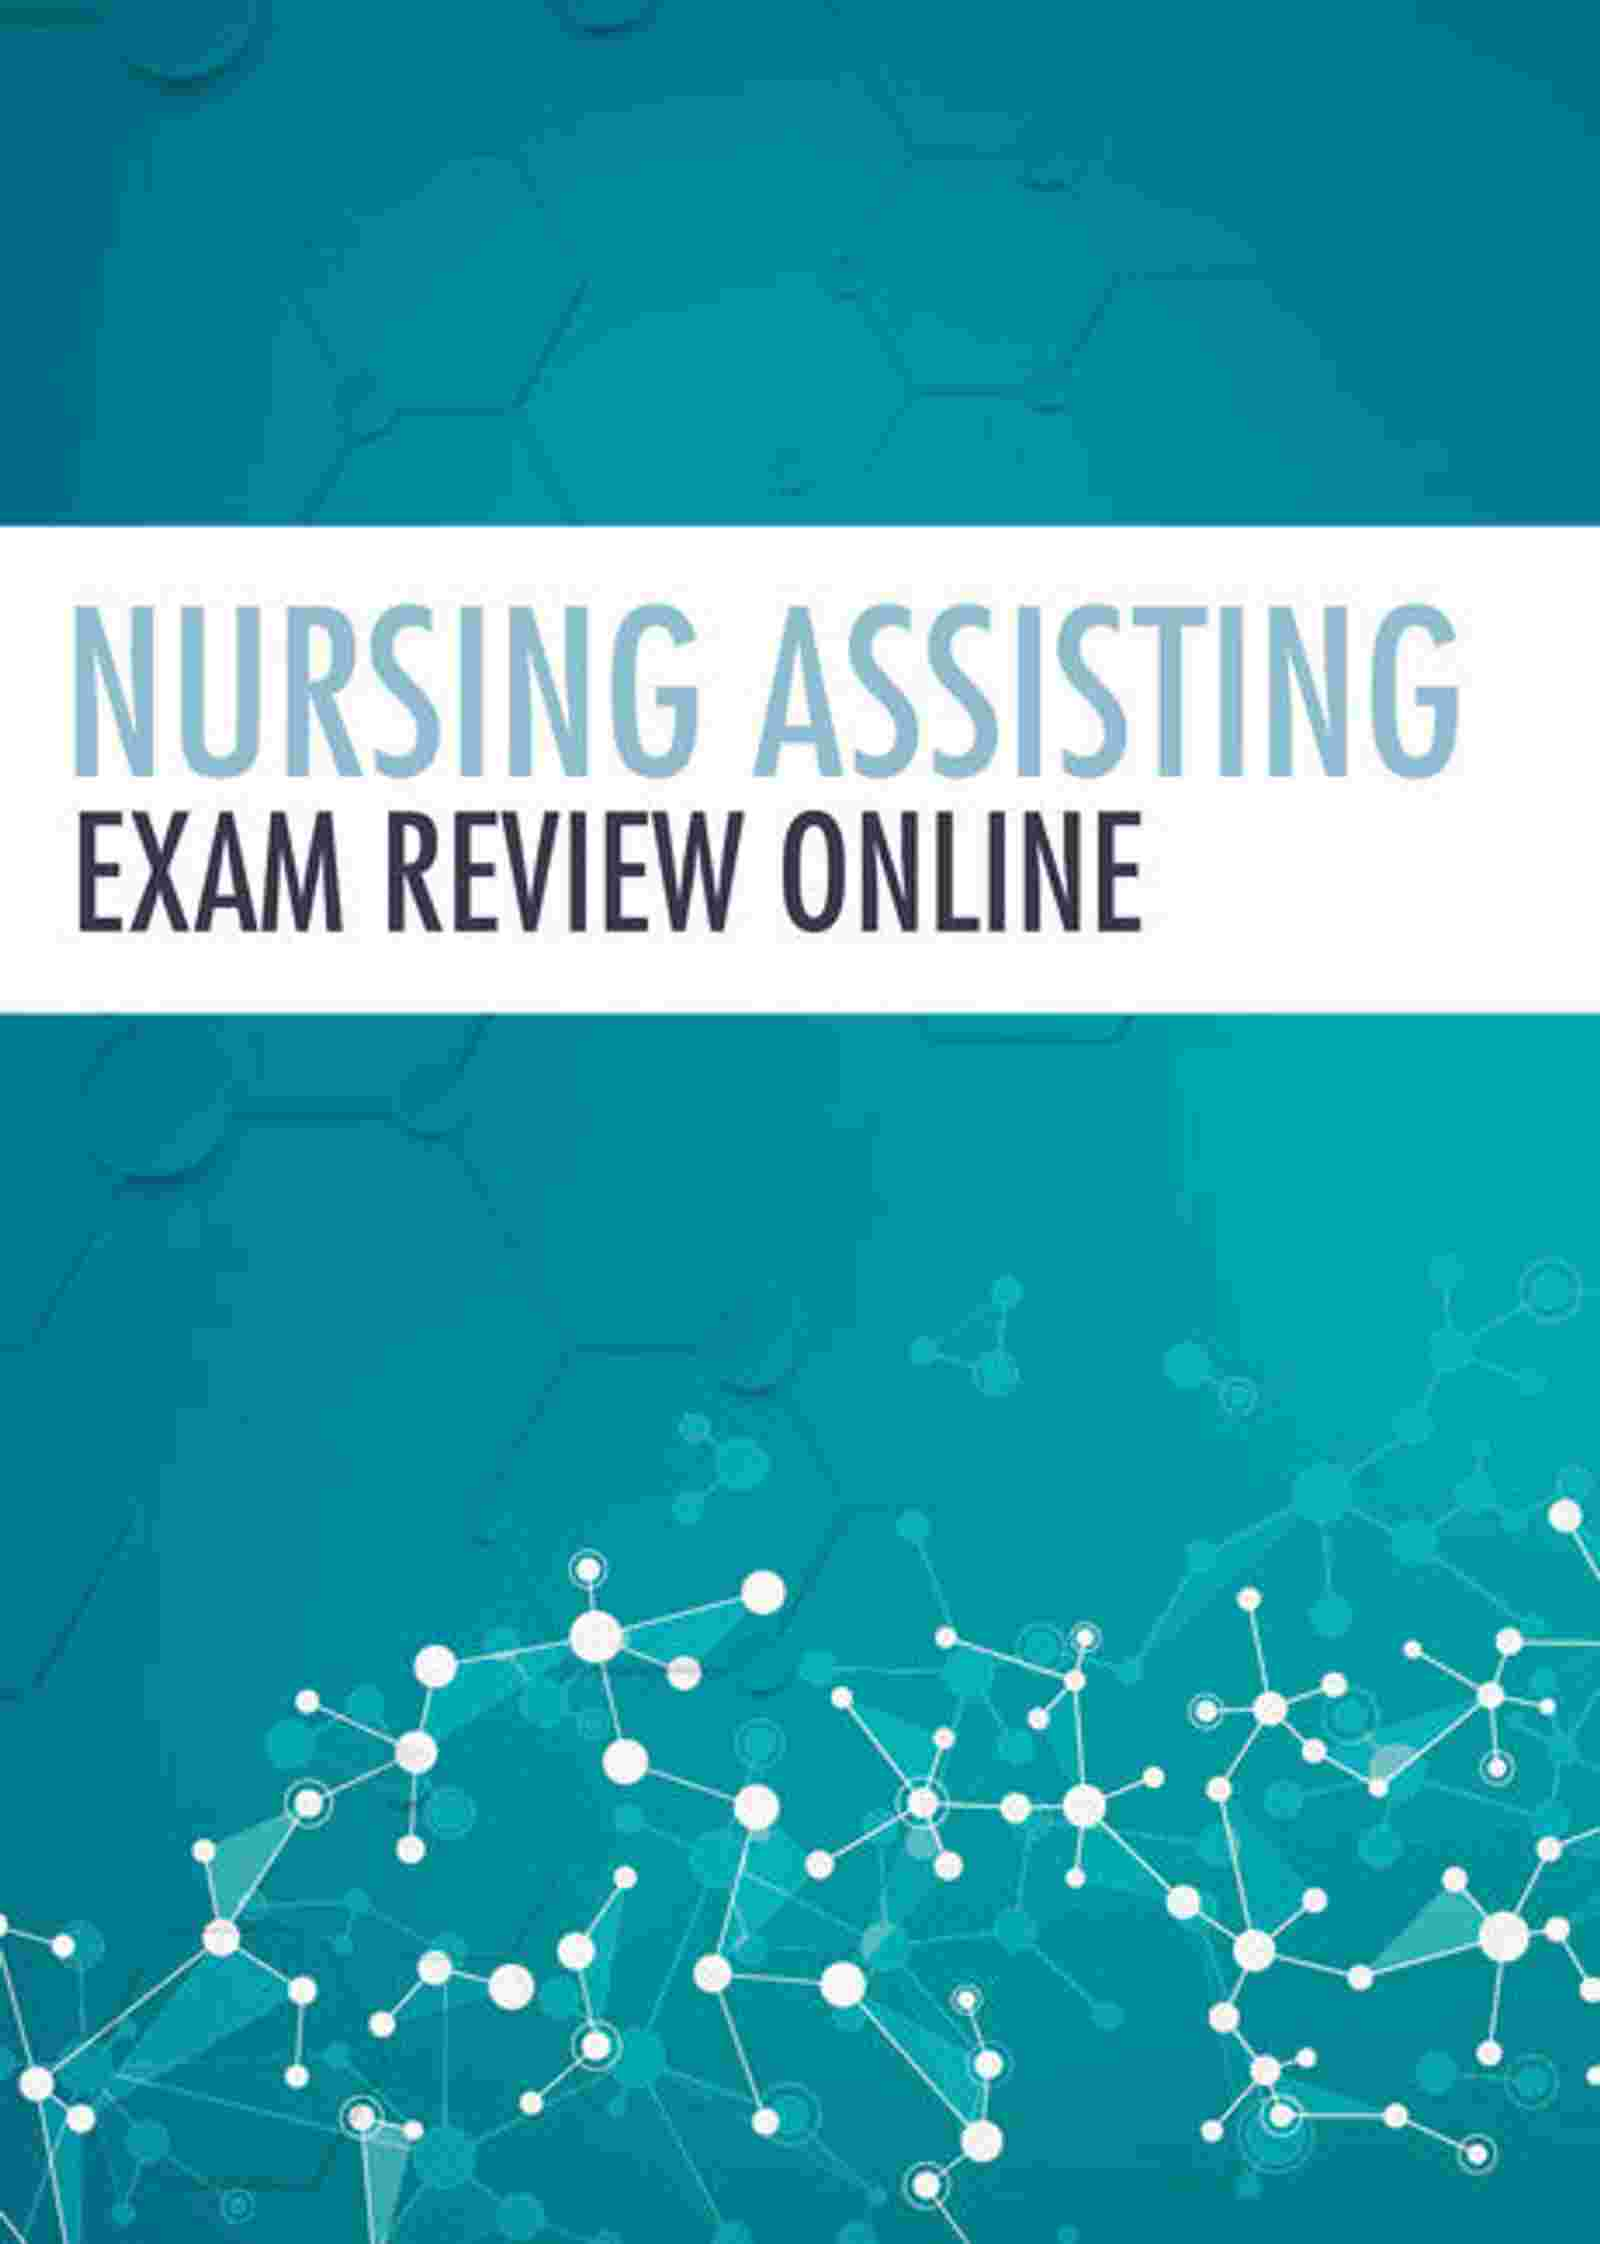 Nursing Assisting Exam Review Online, 2 terms Instant Access: